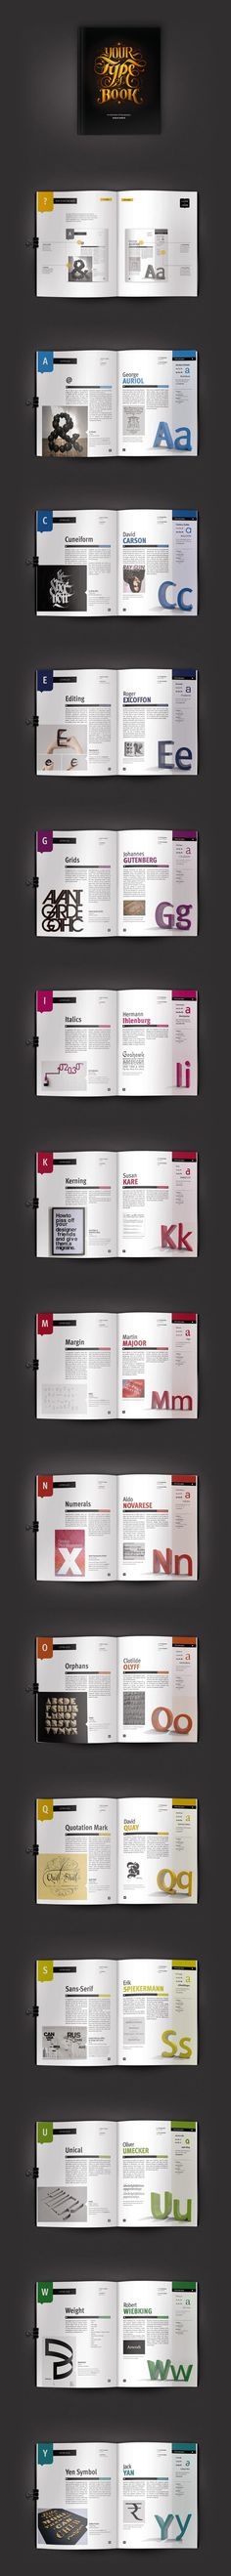 """""""Your Type of Book"""" is an alphabet of typography produced and designed for a typographic assignment. - By Aurelie Maron"""